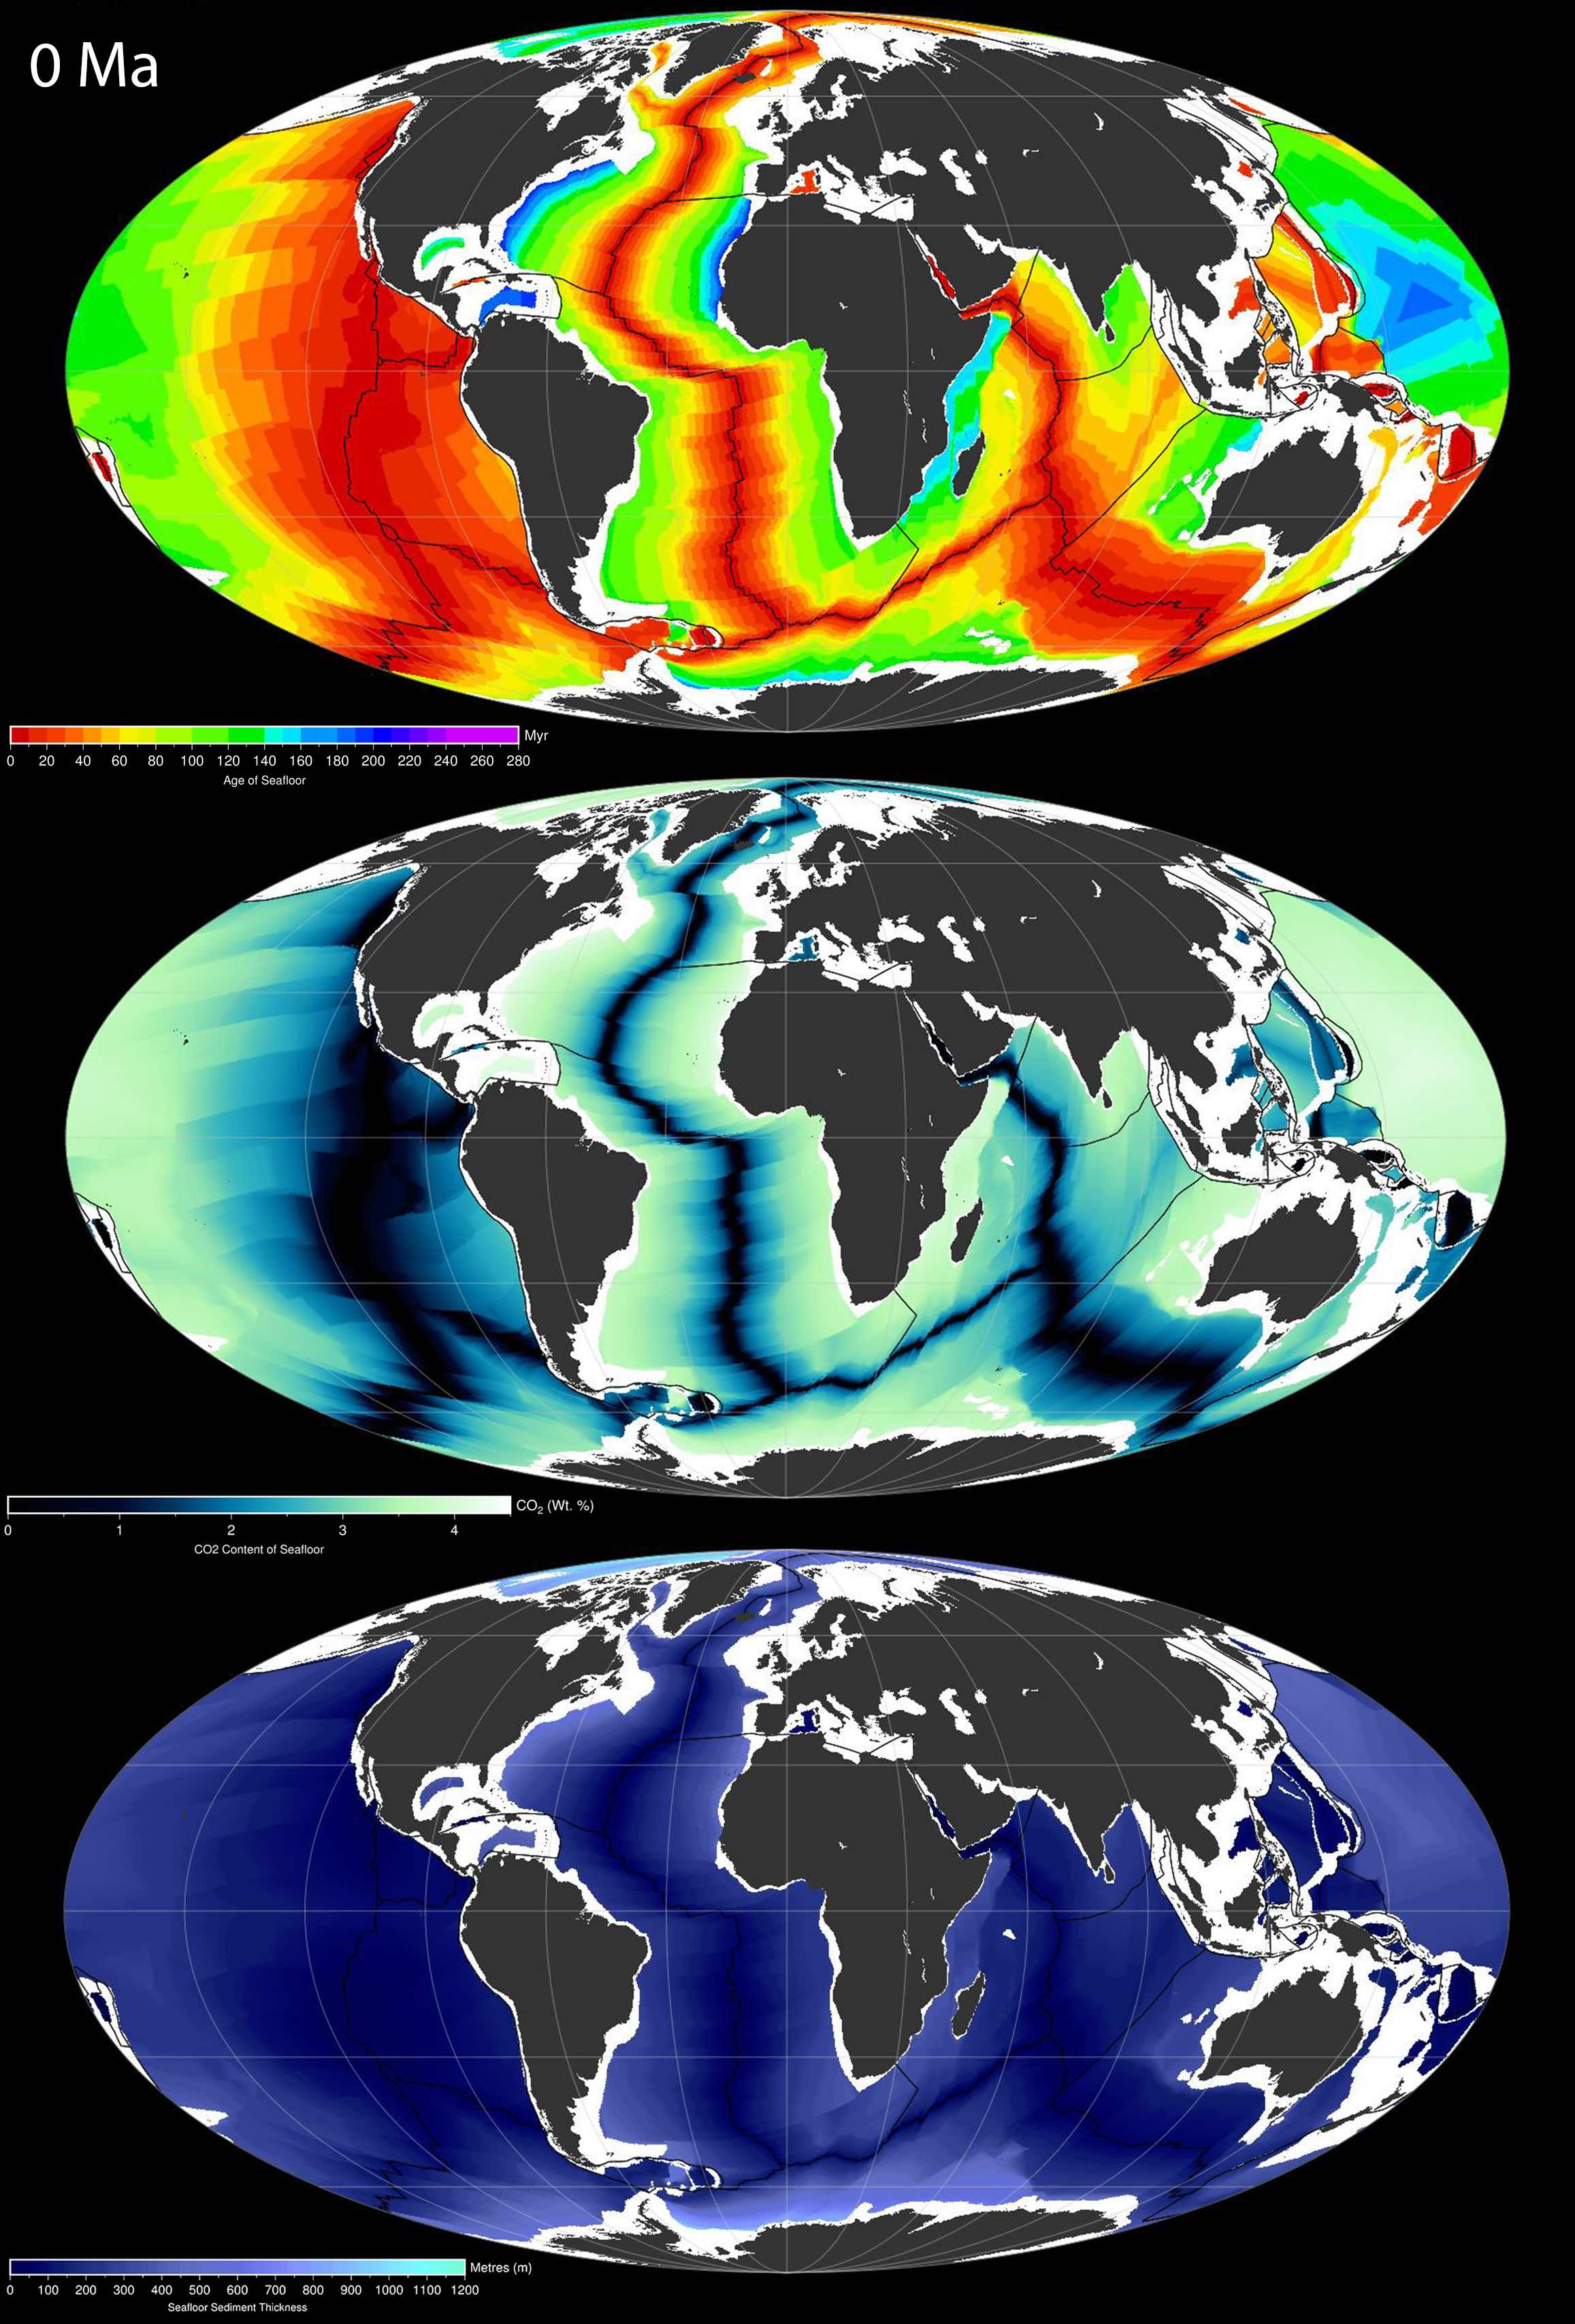 Present-day spatio-temporal distribution of Seafloor Age [Myr] (top), predicted CO2 content [wt. %] of oceanic crust (middle) and seafloor sediment thickness [metres] (bottom) in Mollweide projection. Raster images were produced using GPlates 1.5 with color scales produced in GMT.